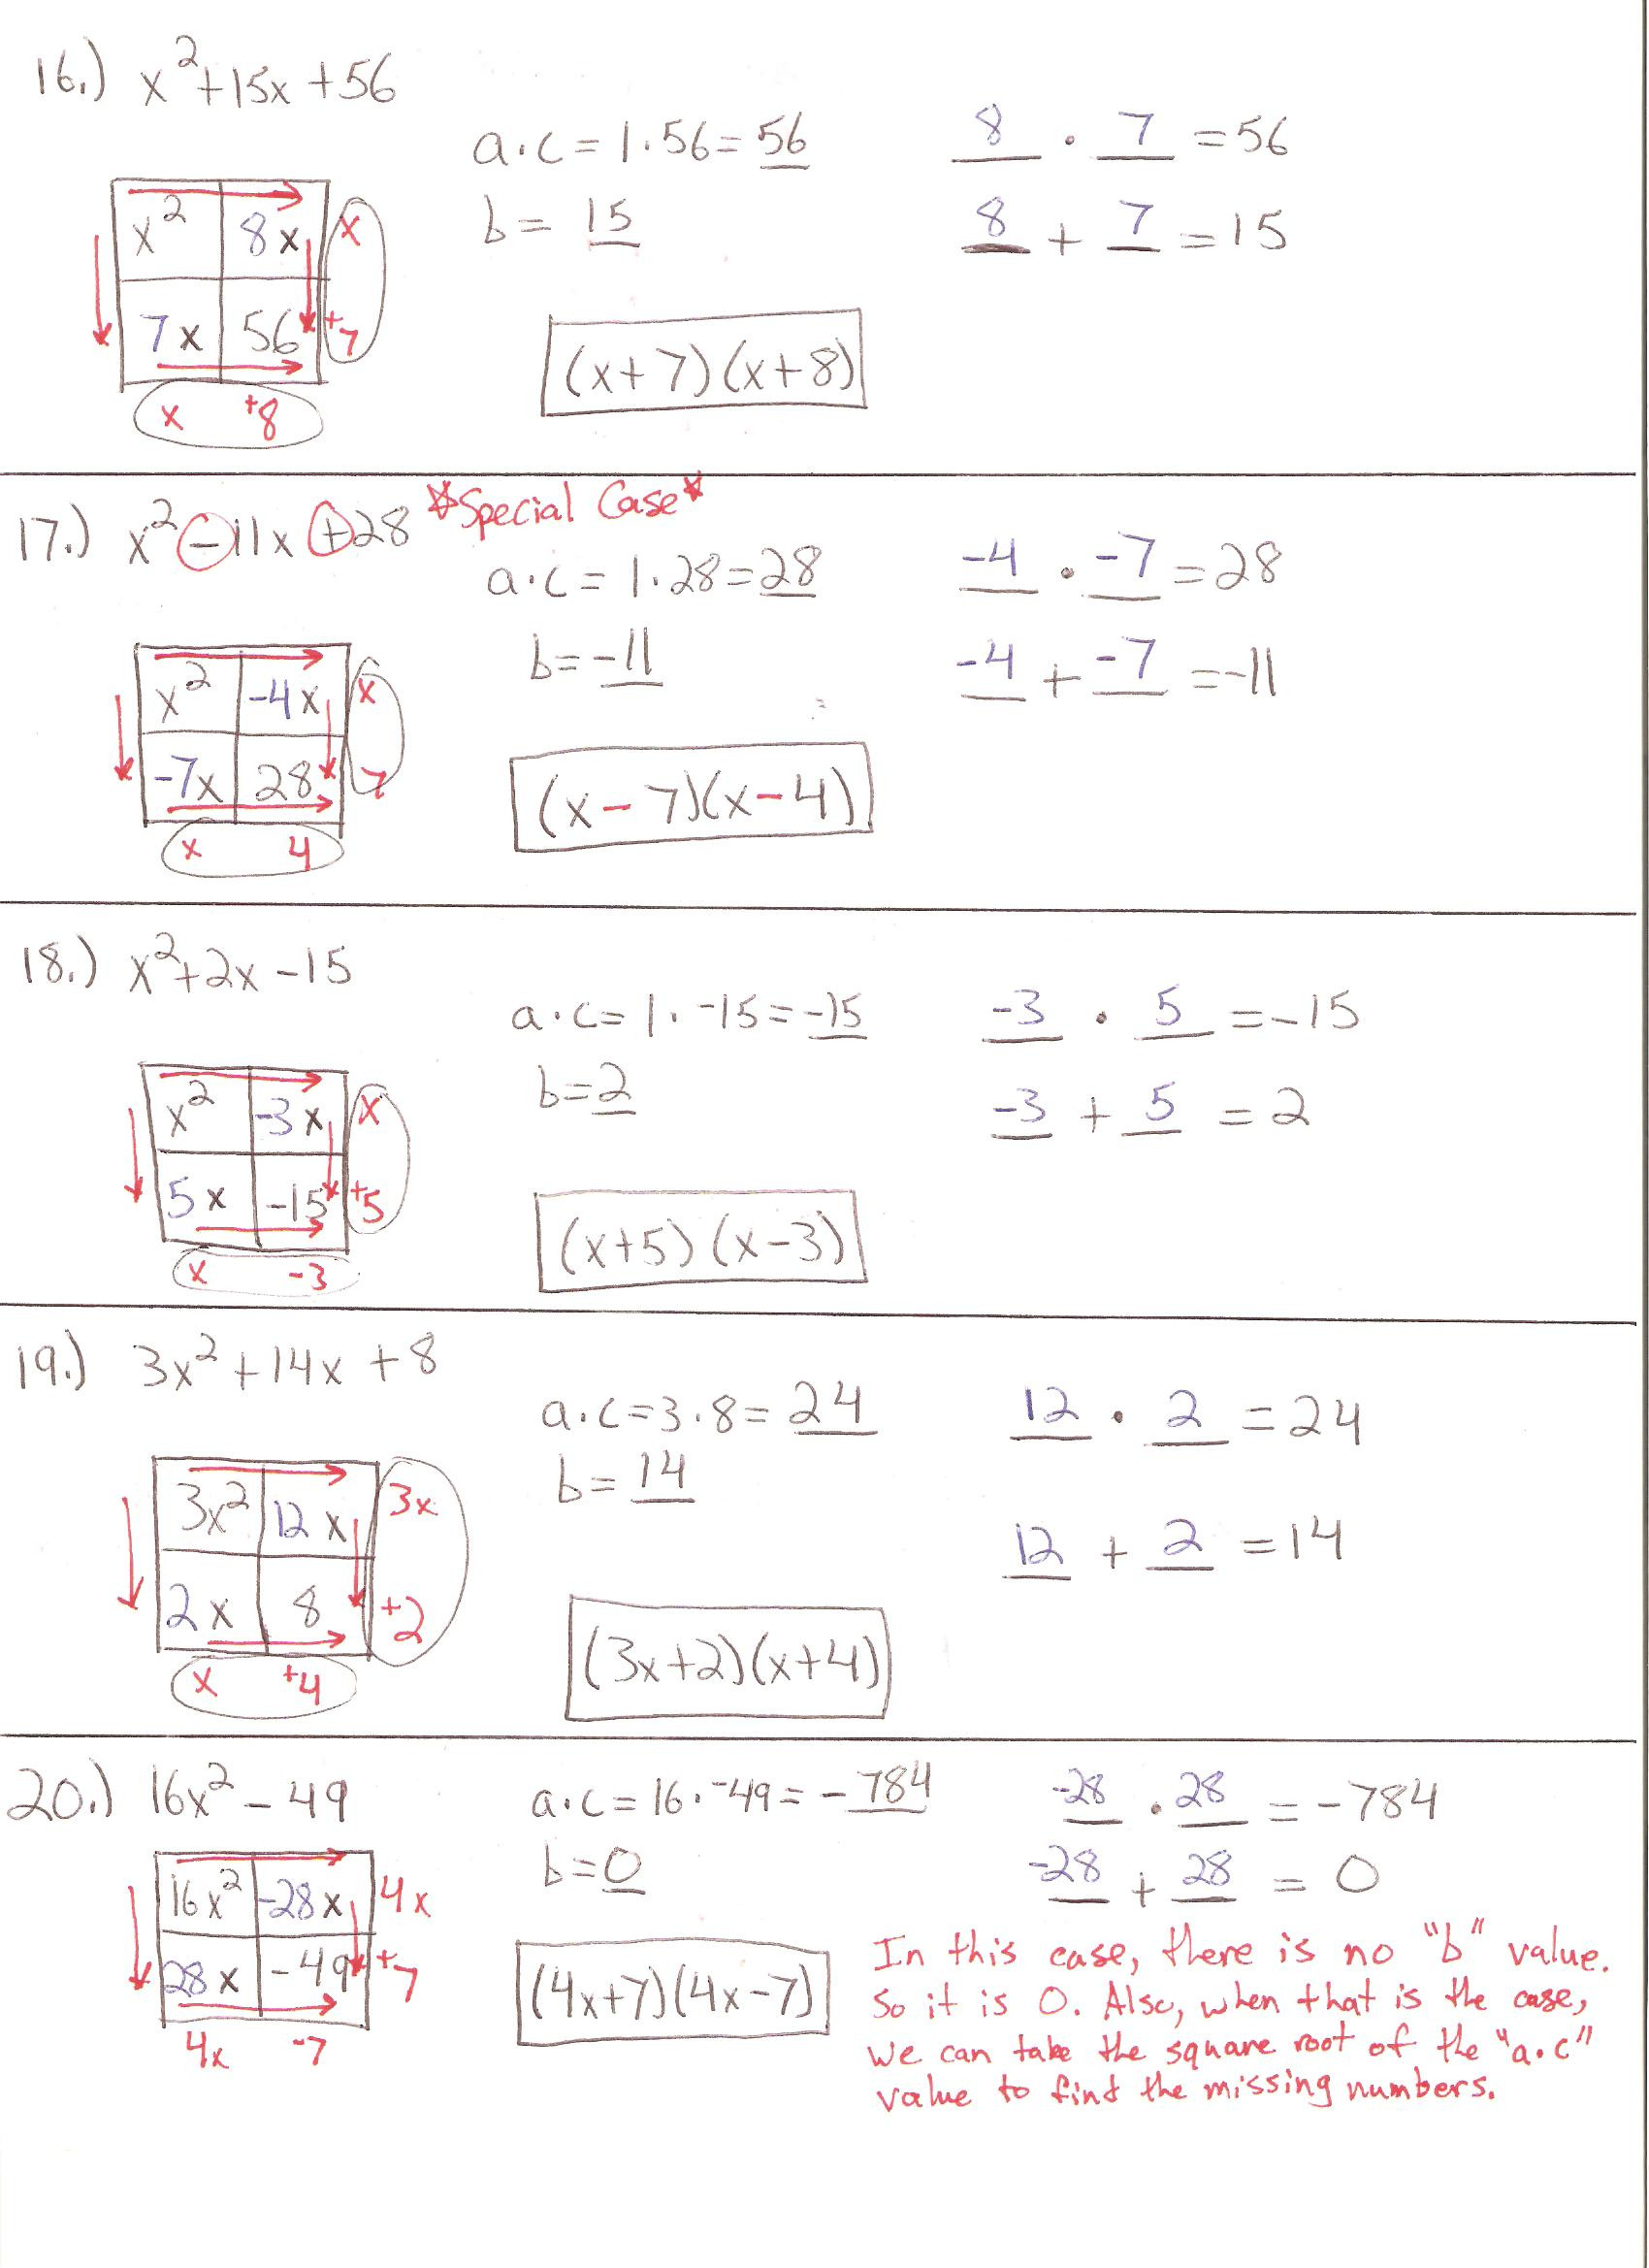 Algebra 2 Solving Quadratic Equations Worksheet Answers